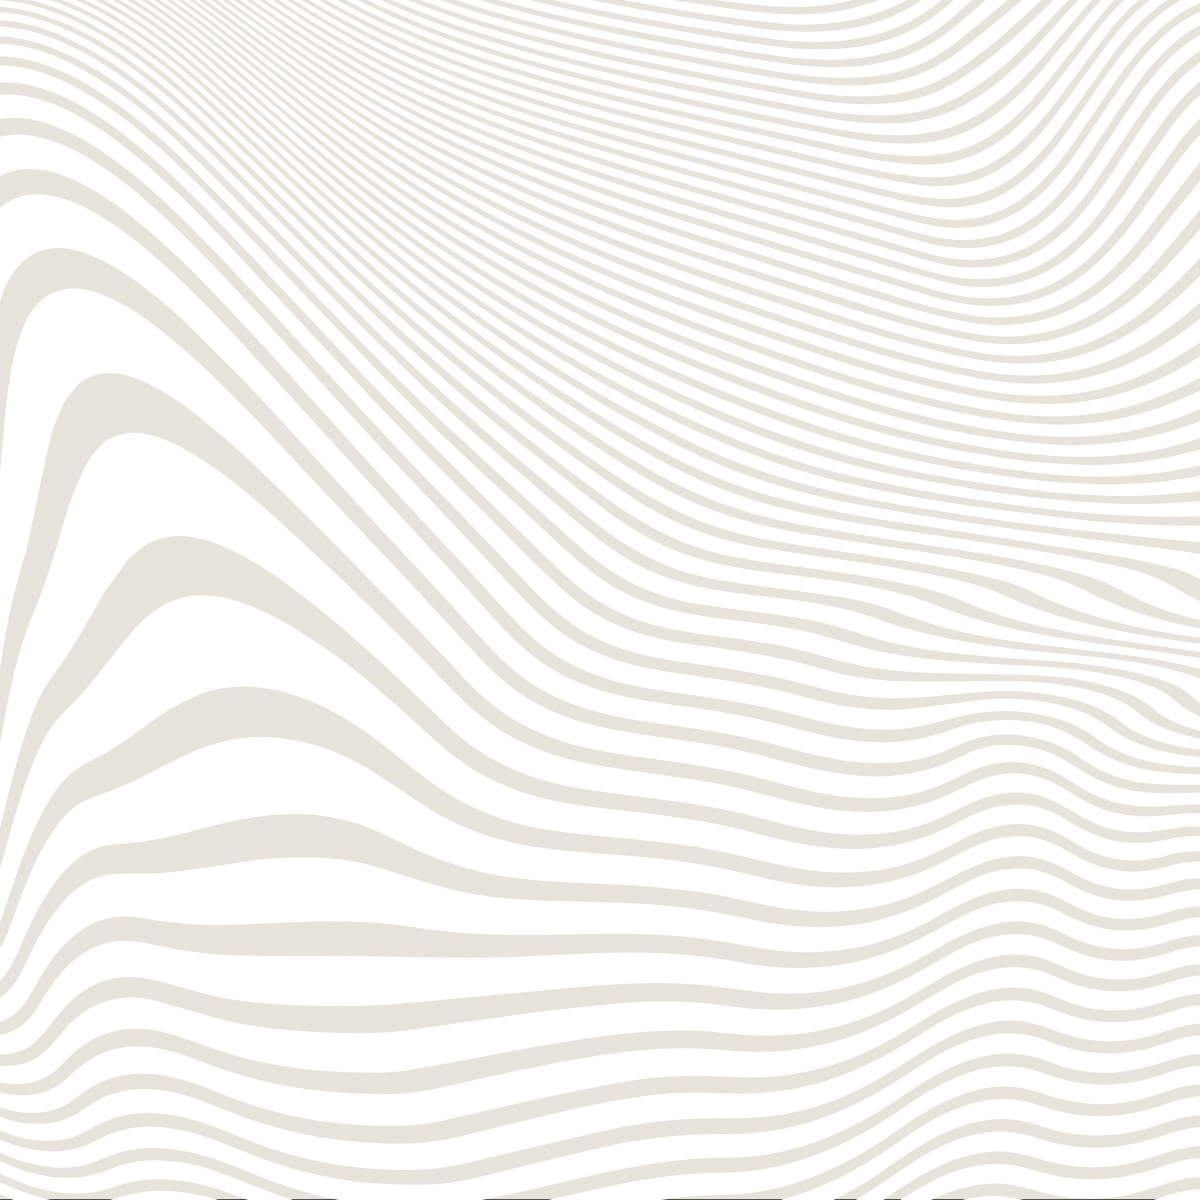 Swirling background pattern and liquify and smudge line art for Catalyst Conference 2016 branding marketing materials.